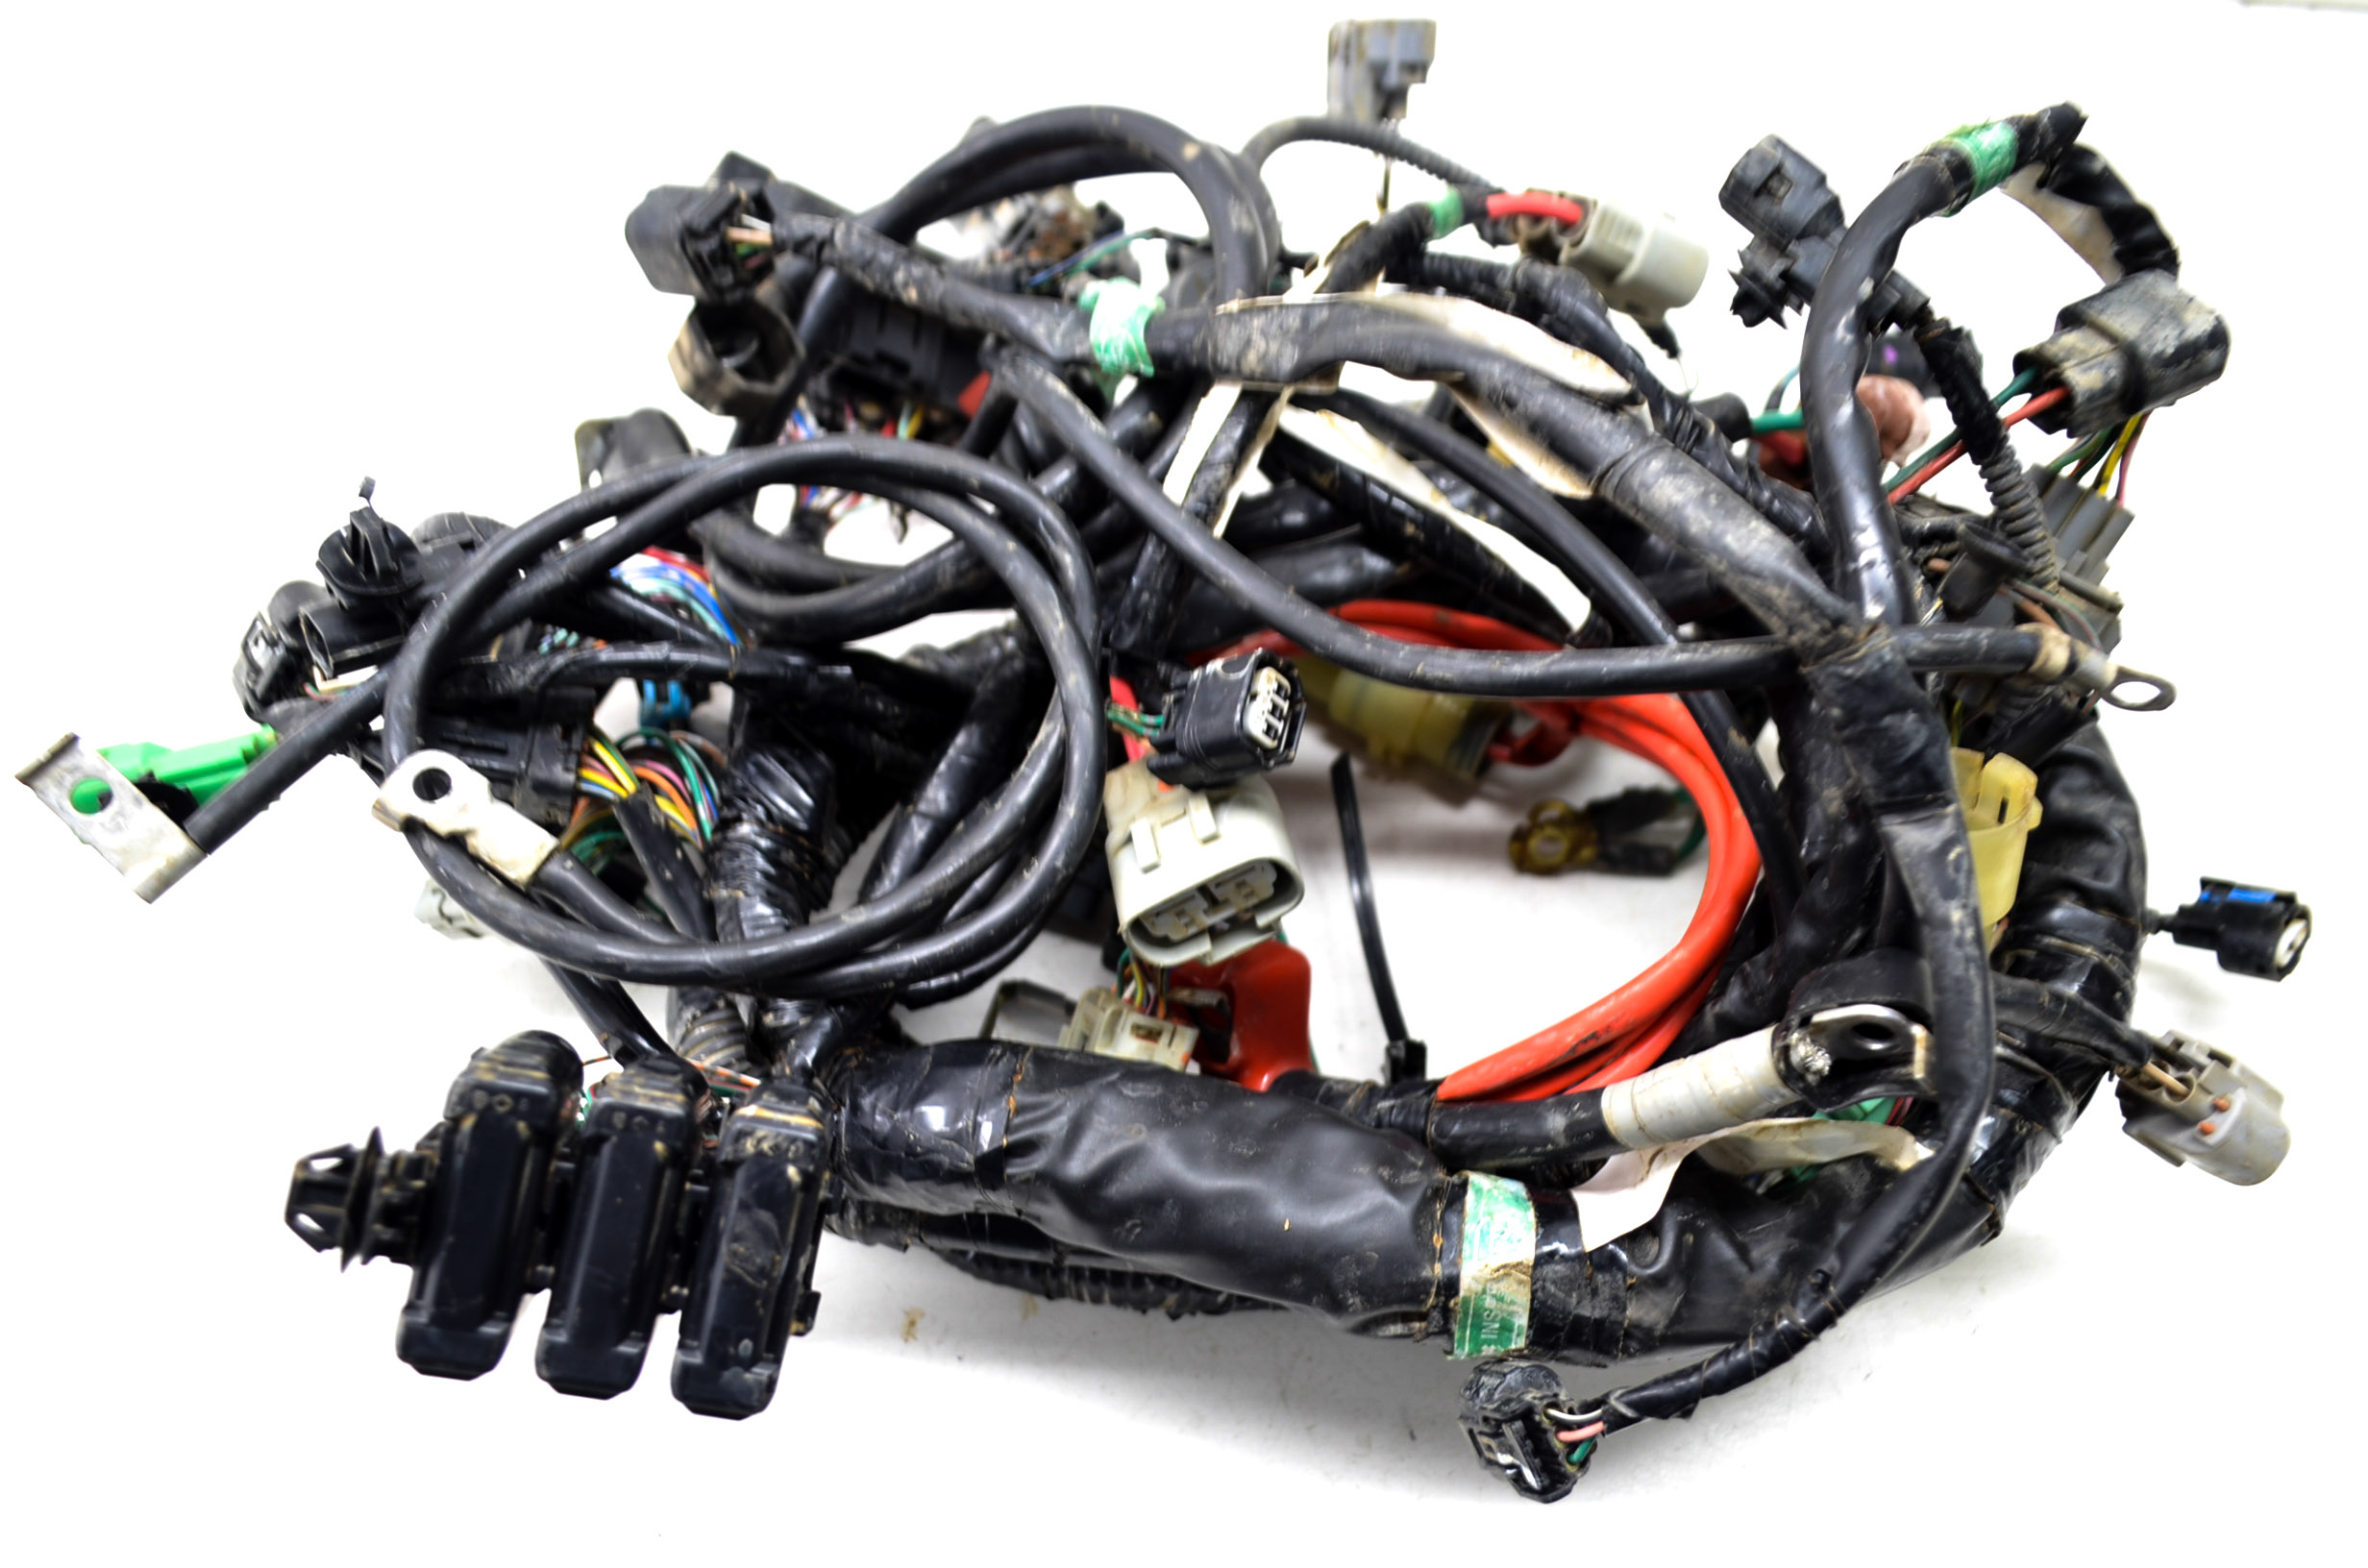 1861 8 12 honda foreman 500 wire harness electrical wiring trx500fpe 4x4 Honda Foreman 450 Lifted at bayanpartner.co